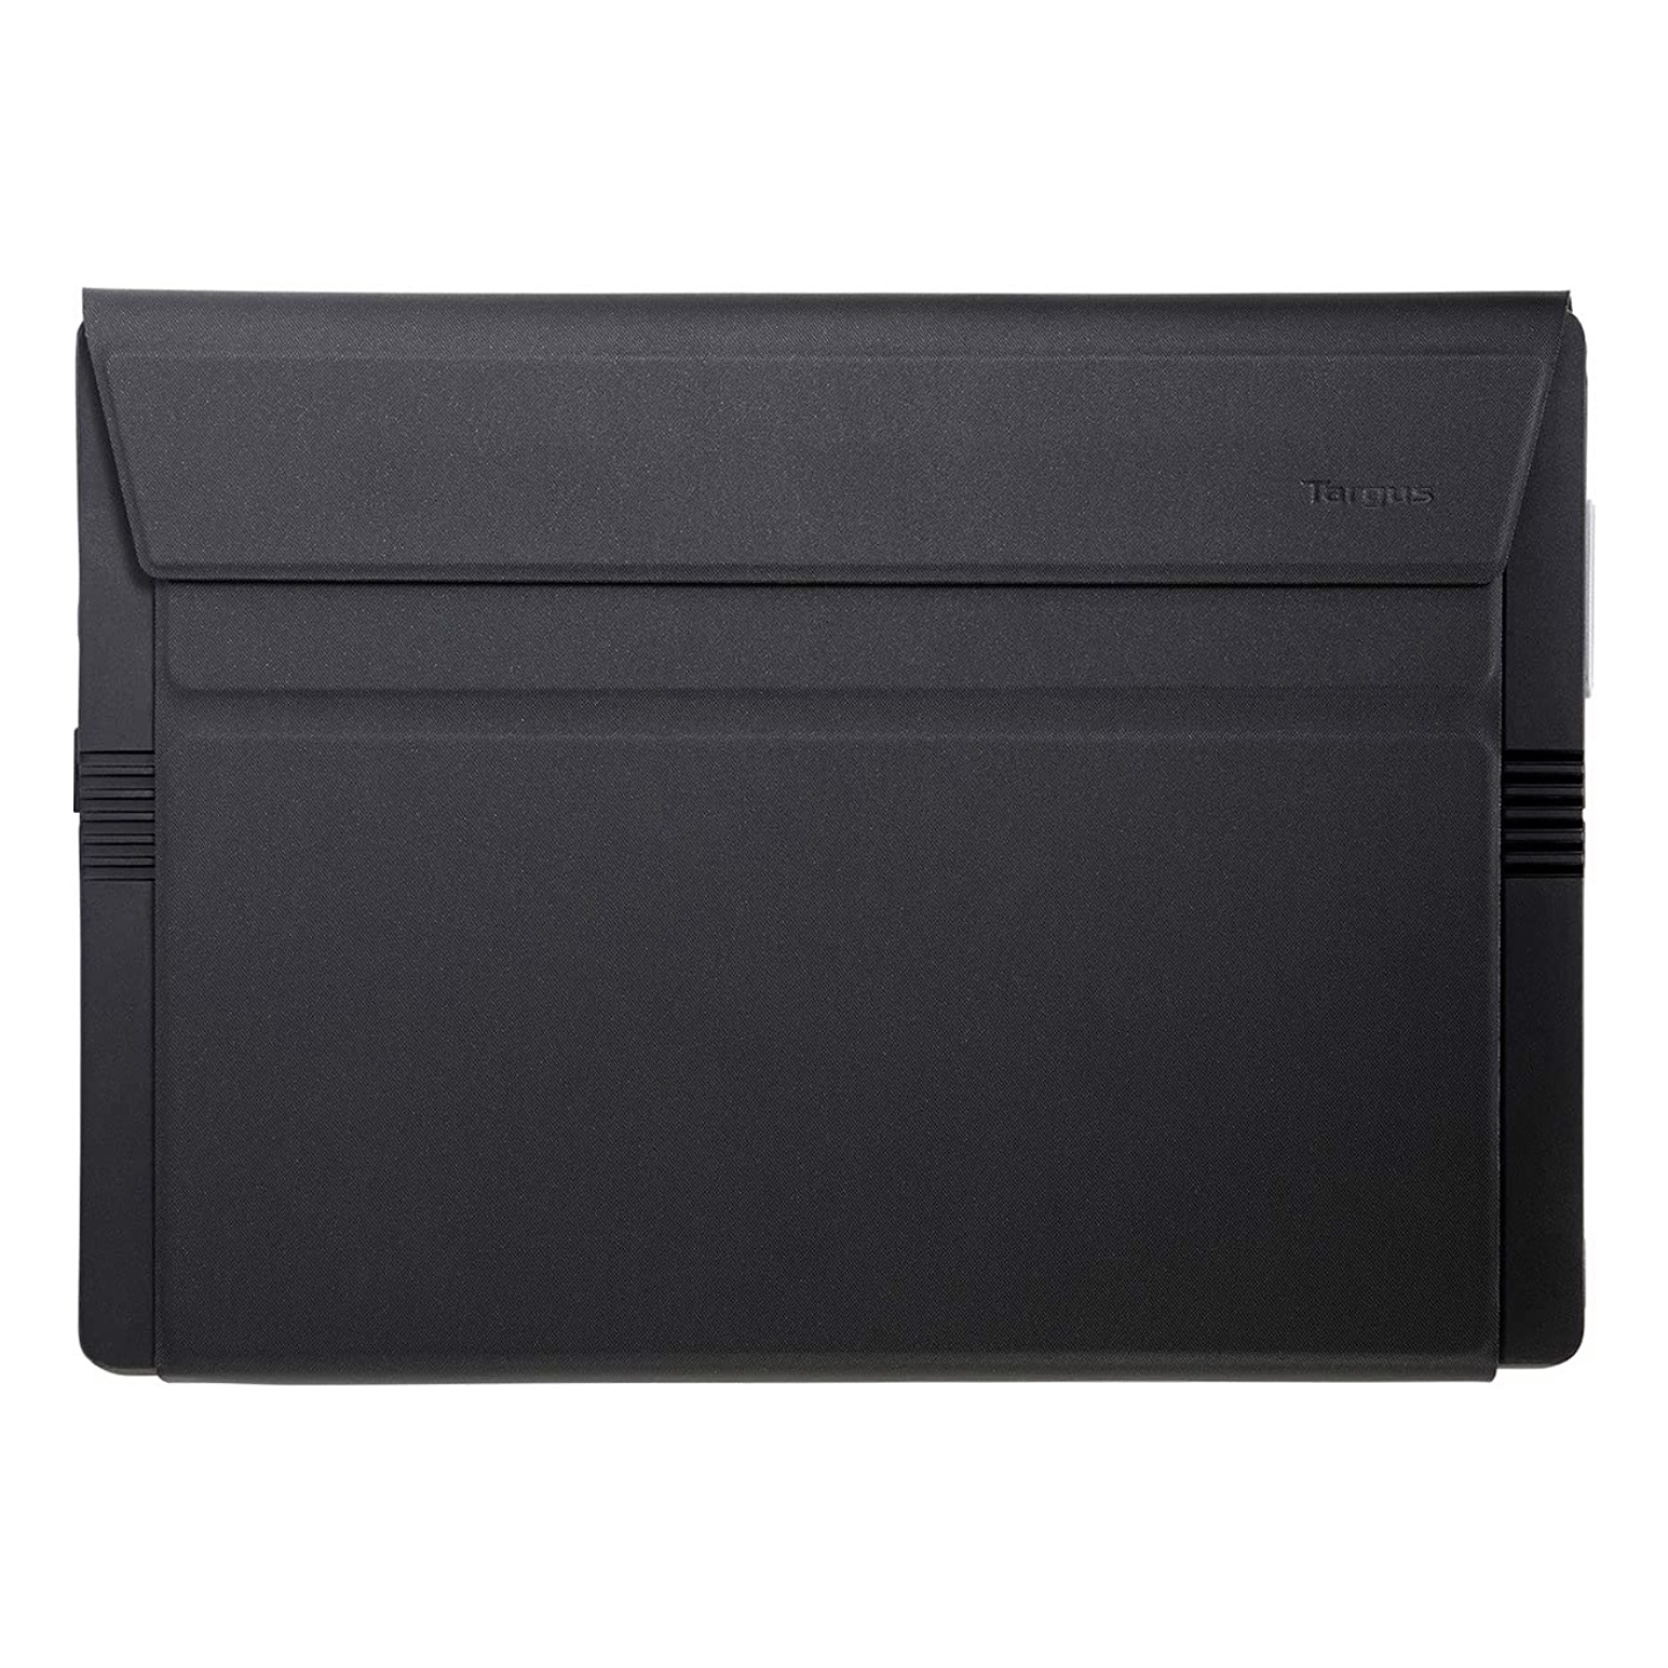 SURFACE PRO 7 Etui Folio Coque Protection Signature 3 en 1